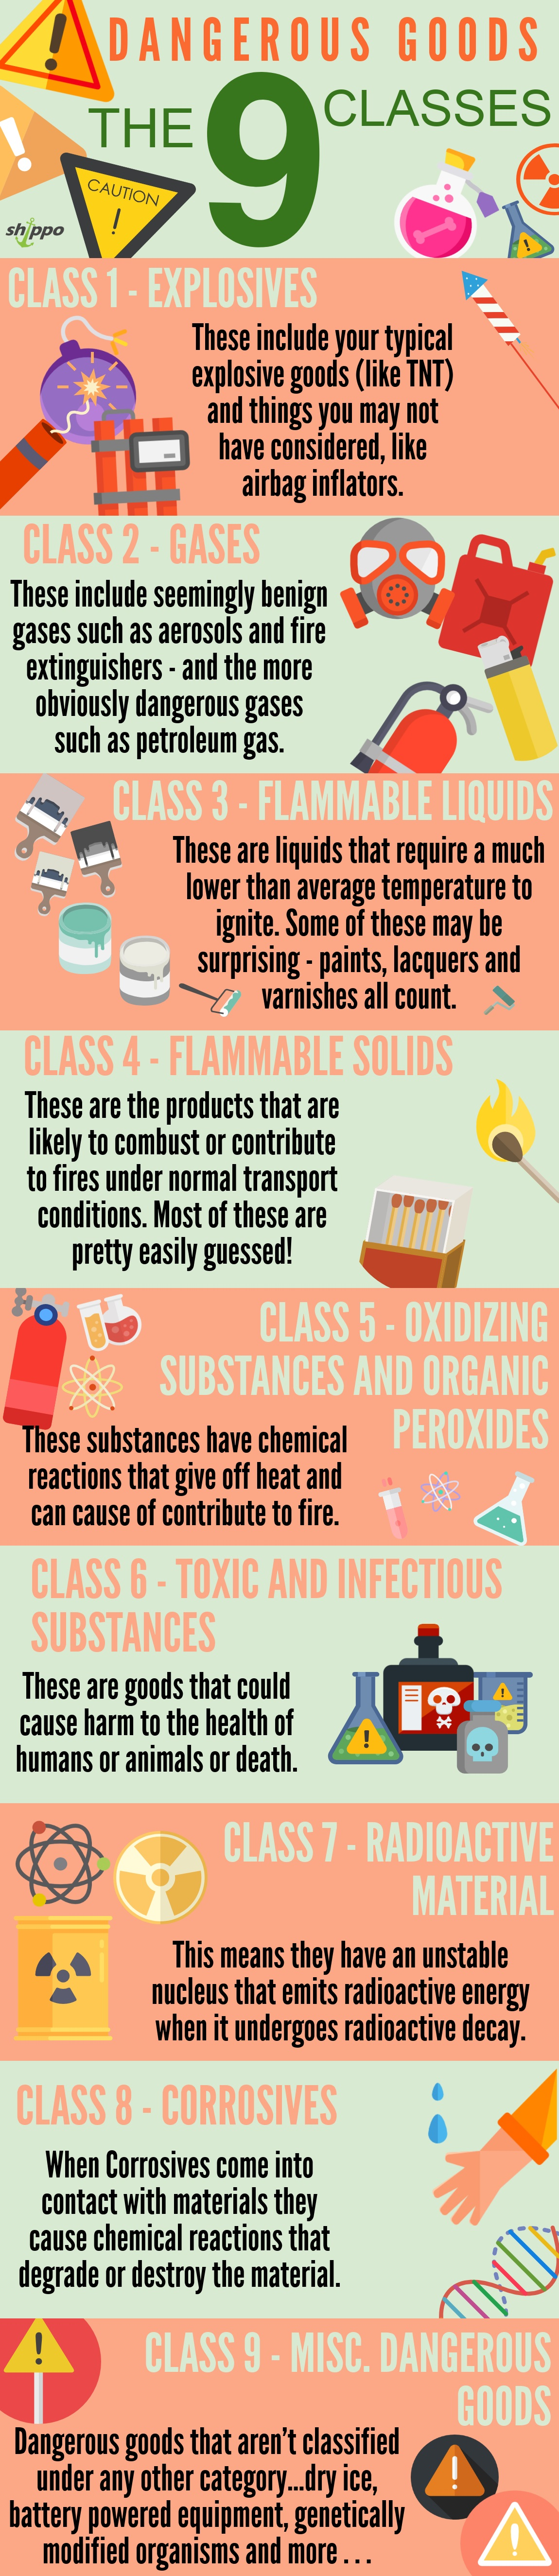 9 Classes of Dangerous Goods - Hazardous Materials